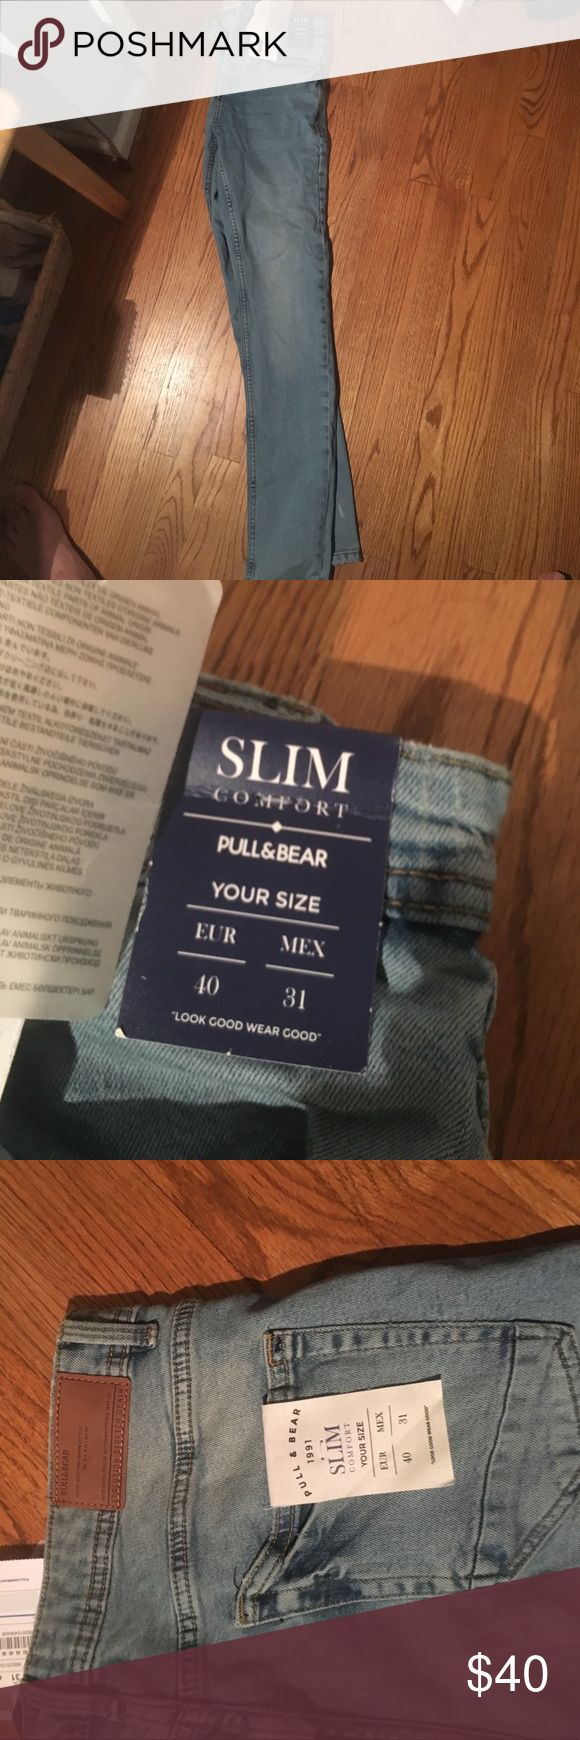 Pull & Bear Slim Jeans (Euro Size: 40 USA Size: M) Pull & Bear slim pants. Very nice material. Tight fit on legs which is very trendy. Does not ship to U.S. through their website so I ordered it off ASOS. Never been worn. Tags untouched. Pull&Bear Jeans Slim